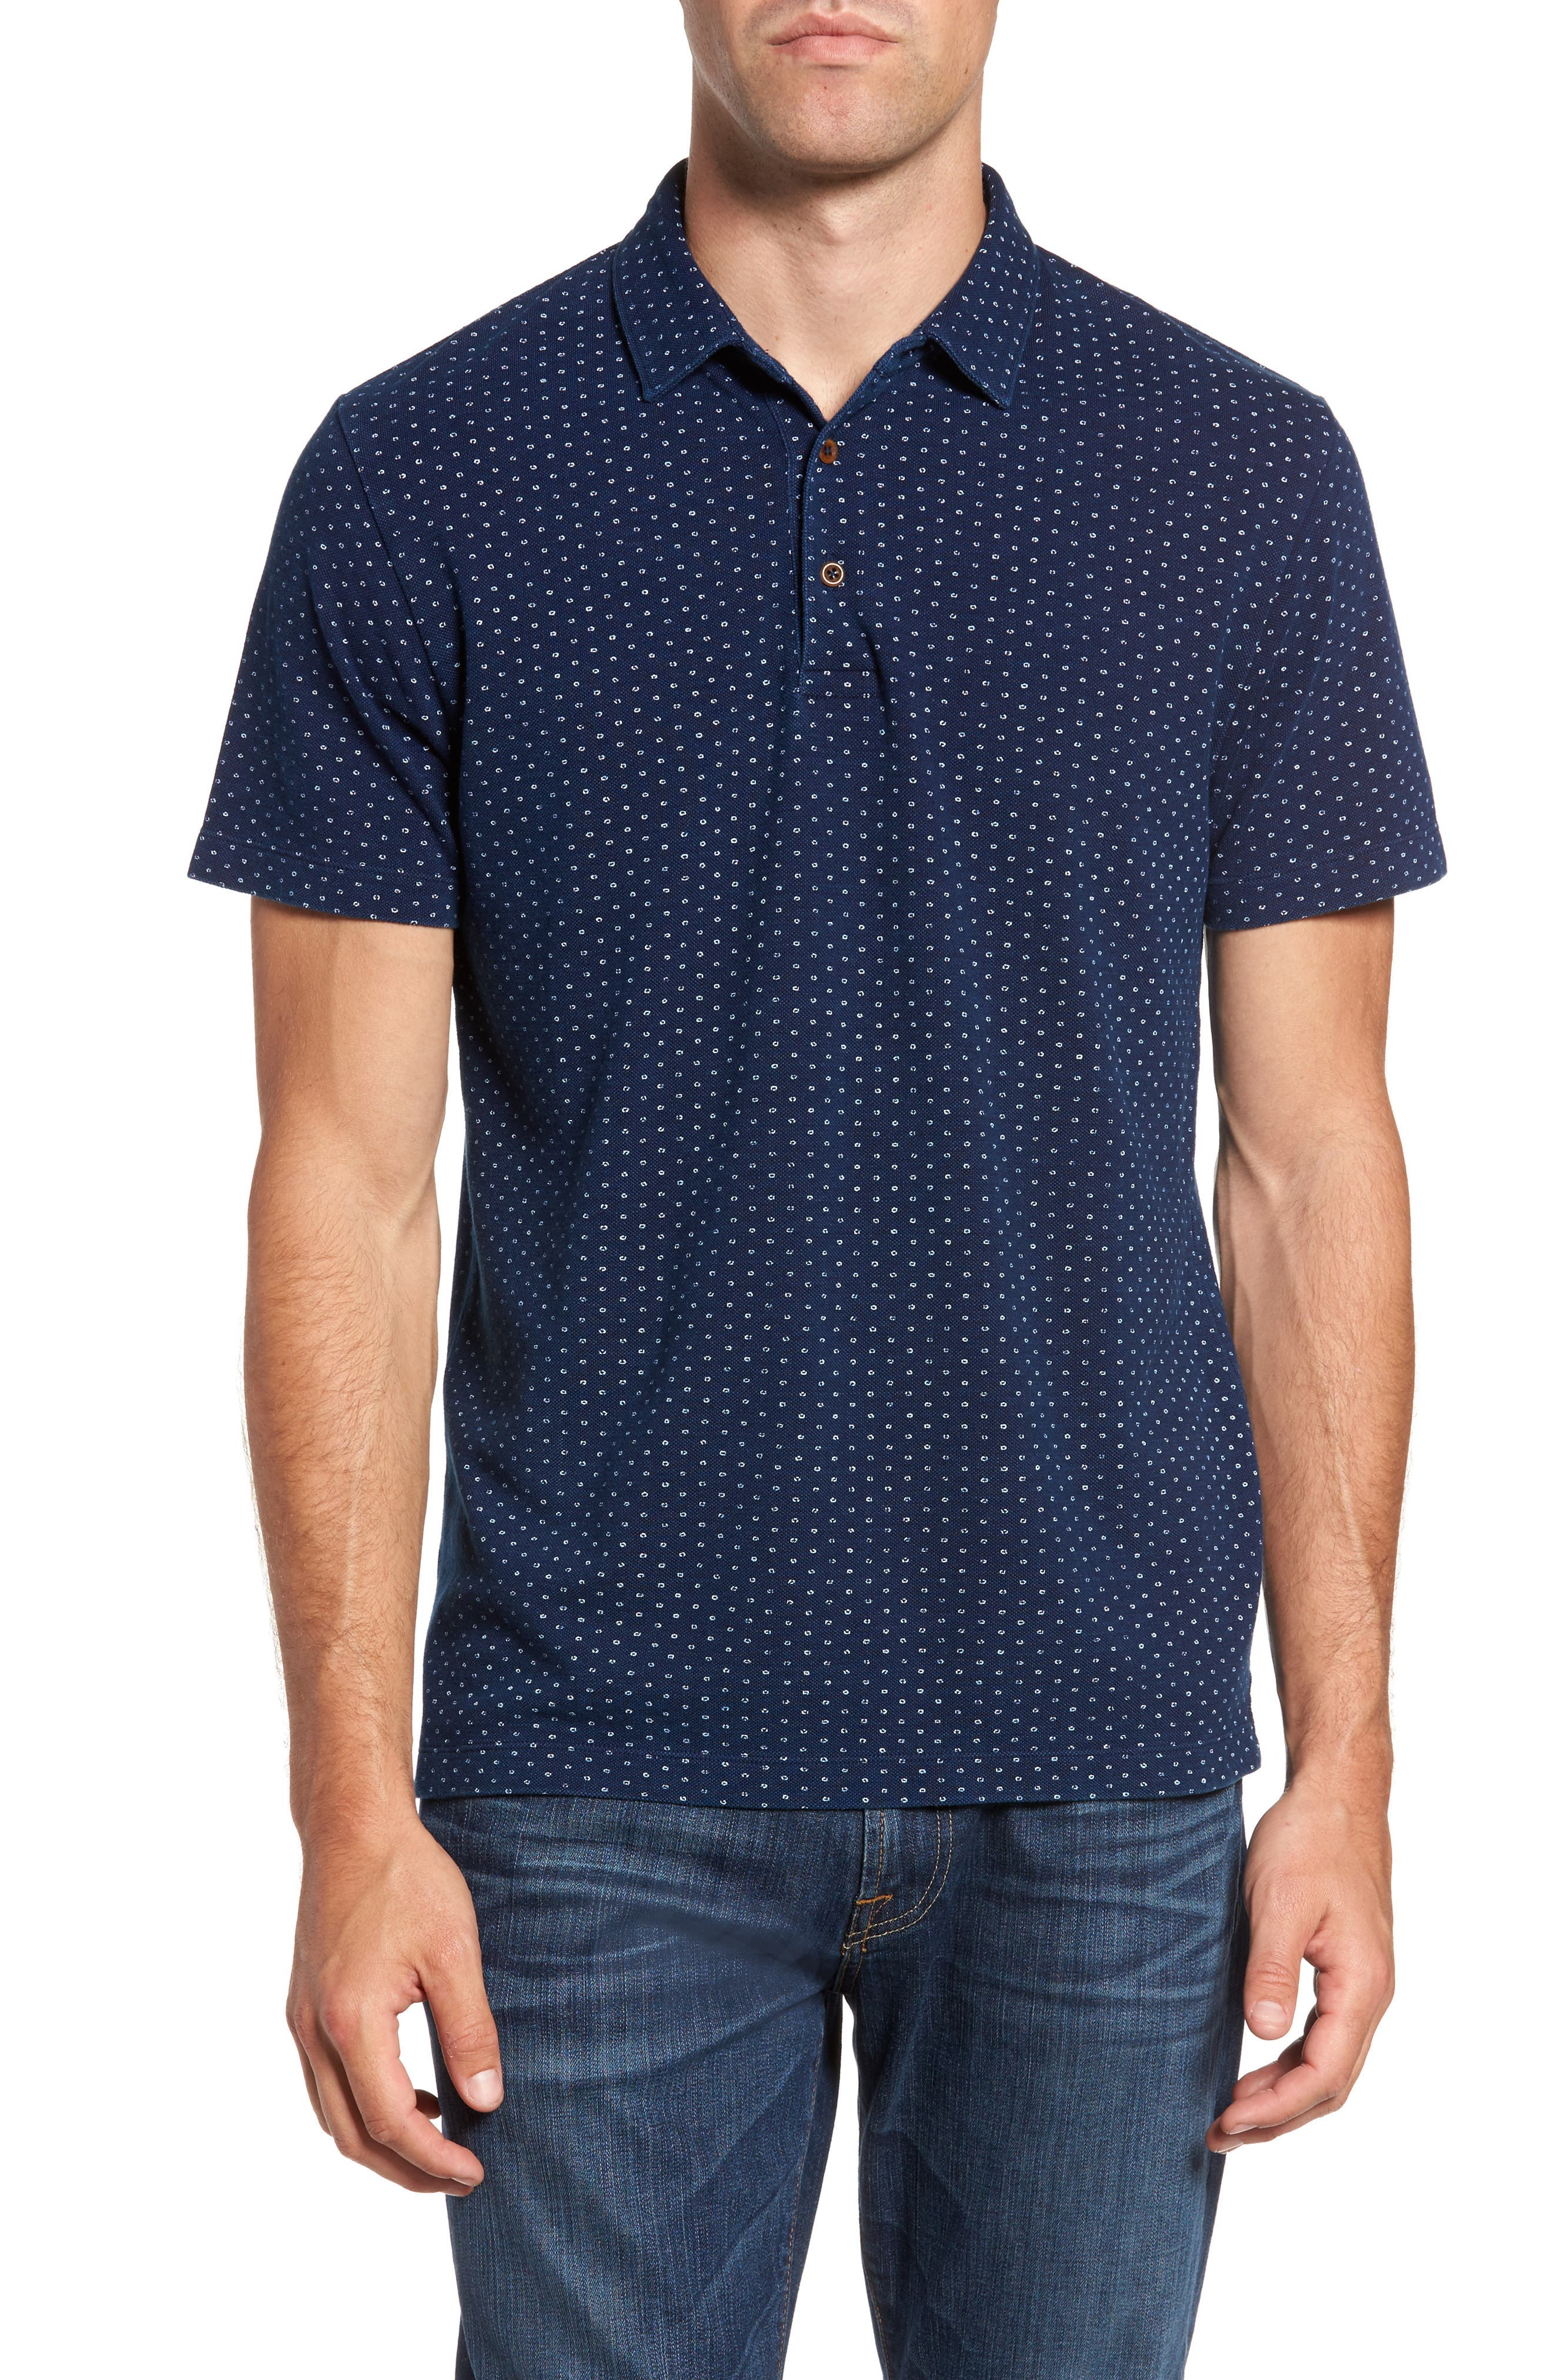 Main Image - French Connection Dojo Dot Regular Fit Cotton Polo